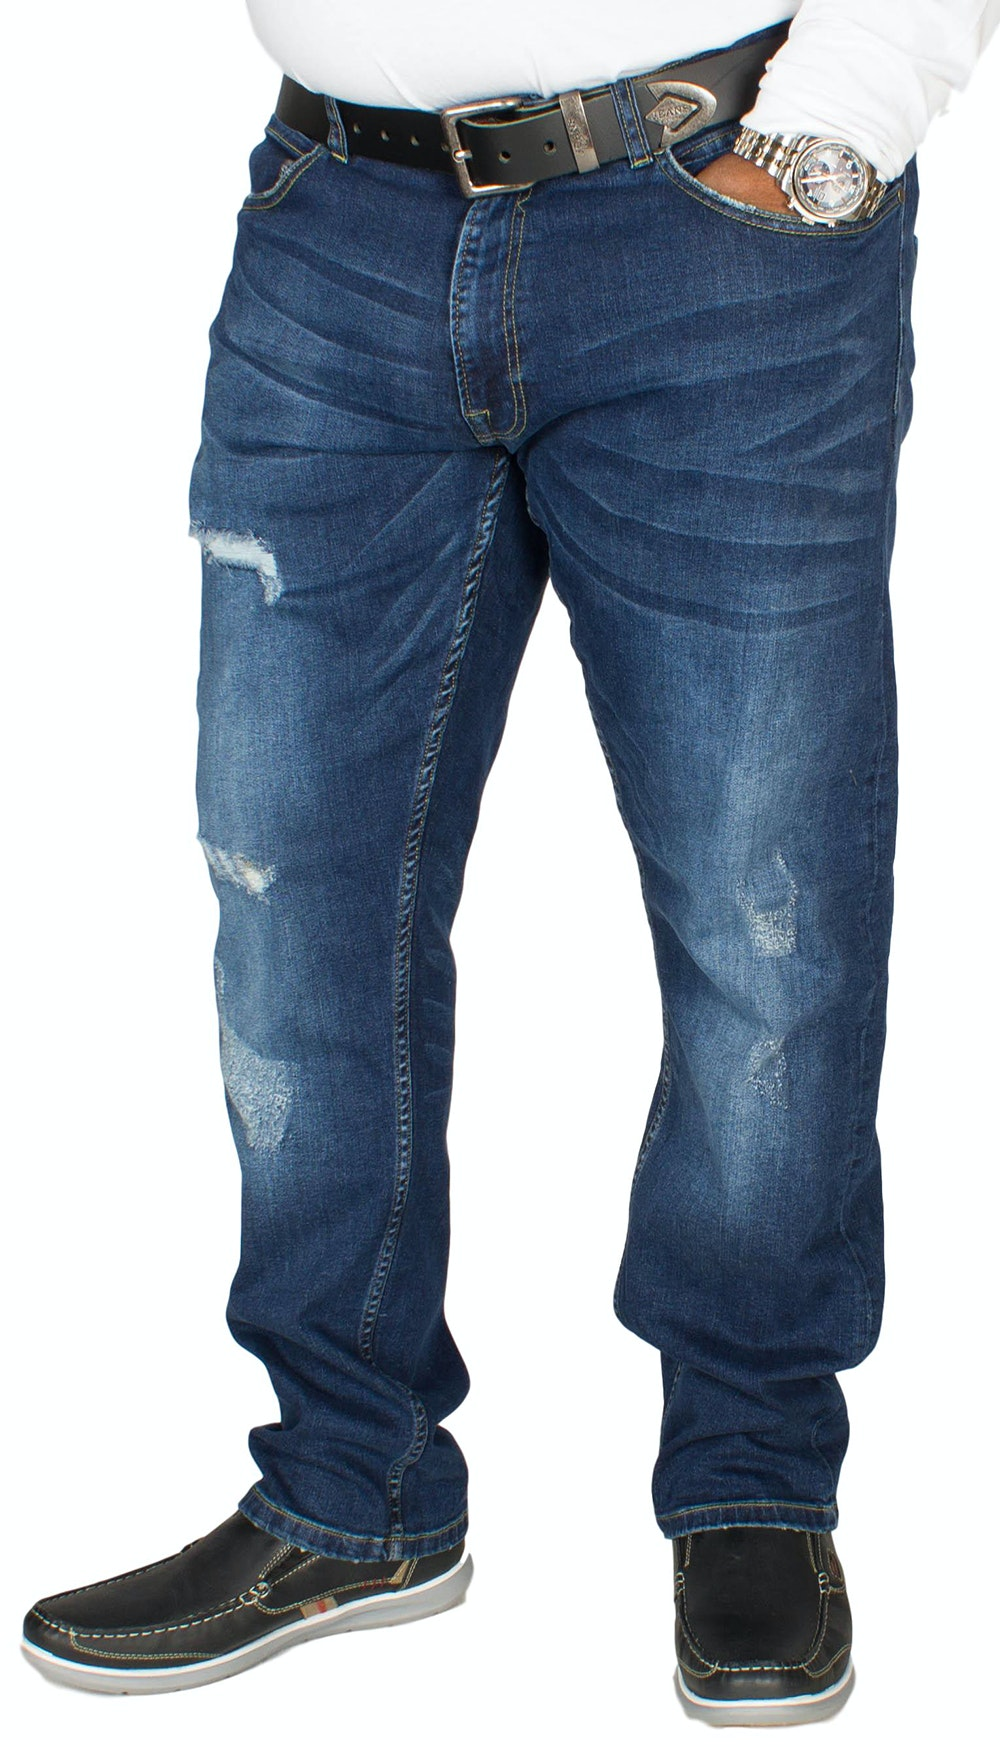 D555 Asher Stretch Fit Jeans Vintage Blue